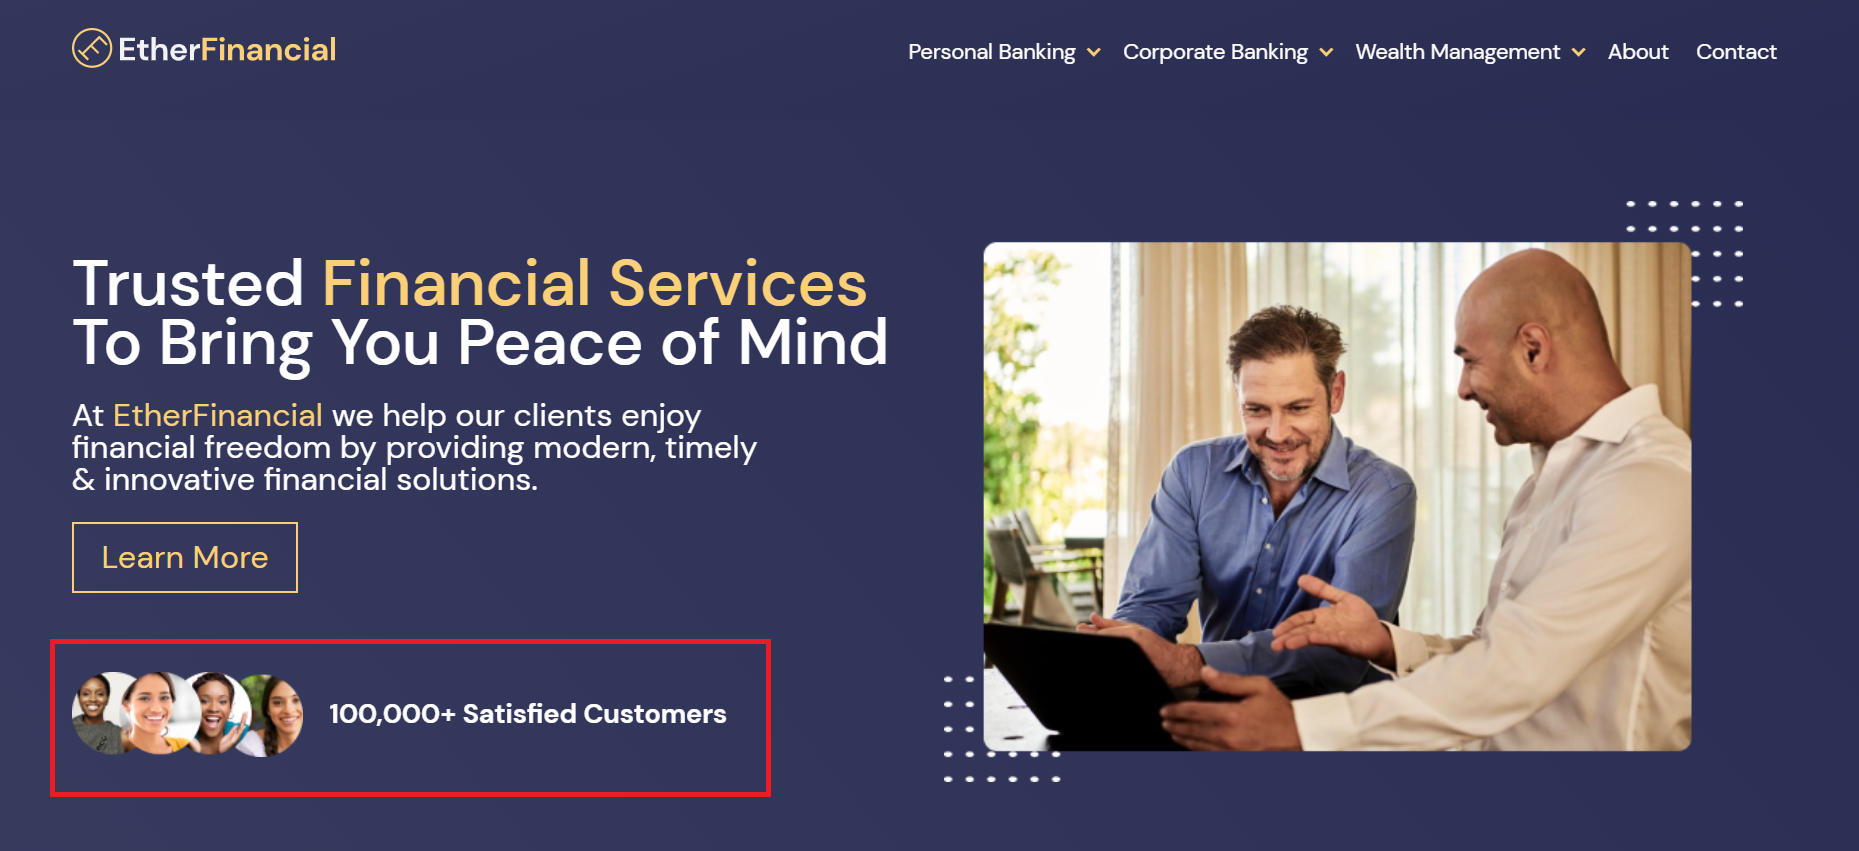 Social Proof Ether Financial